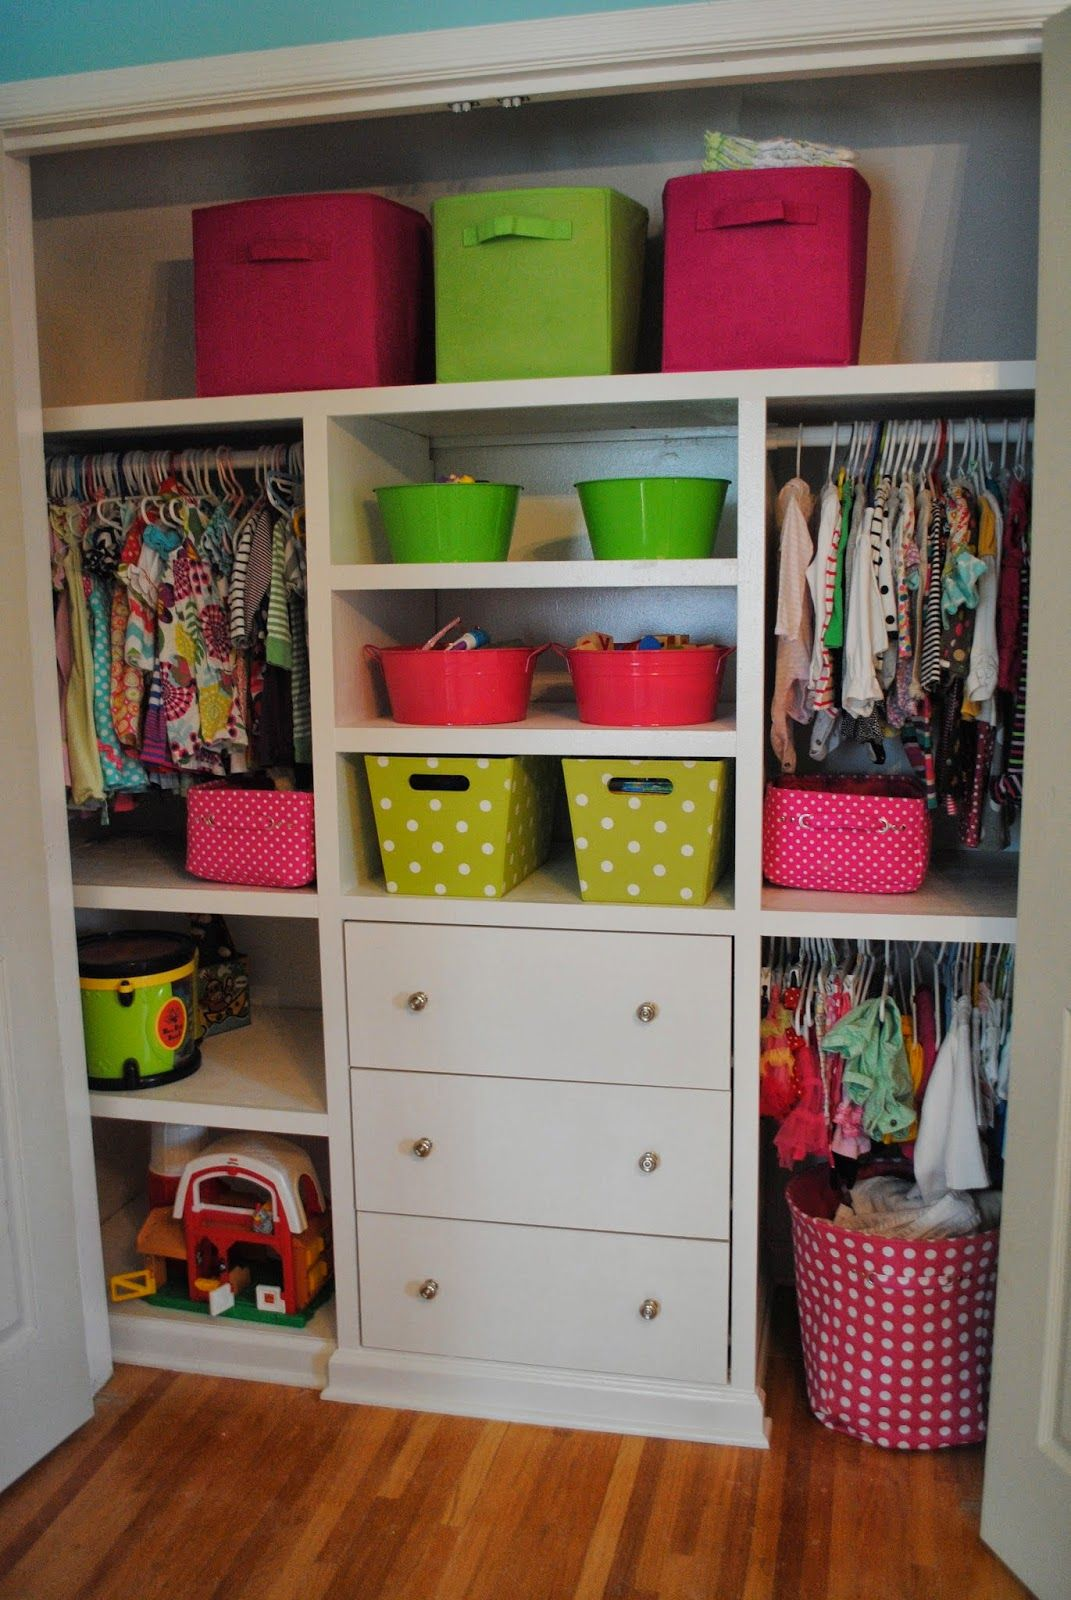 Sally's Closet Reveal | Bedroom organization closet, Baby ...